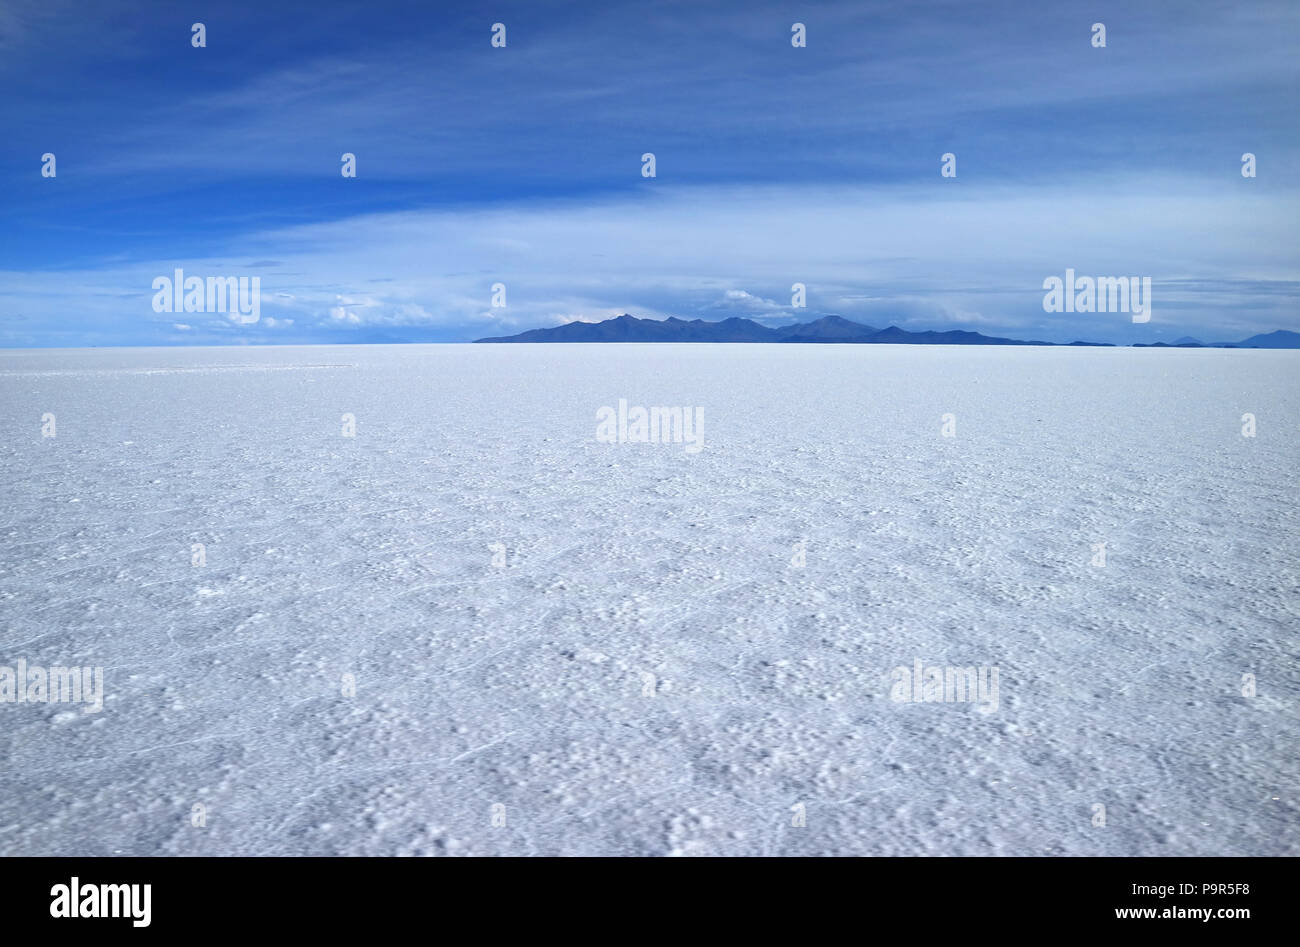 Stunning view of the world's largest salts flat, Salar de Uyuni in Potosi of Bolivia, South America - Stock Image